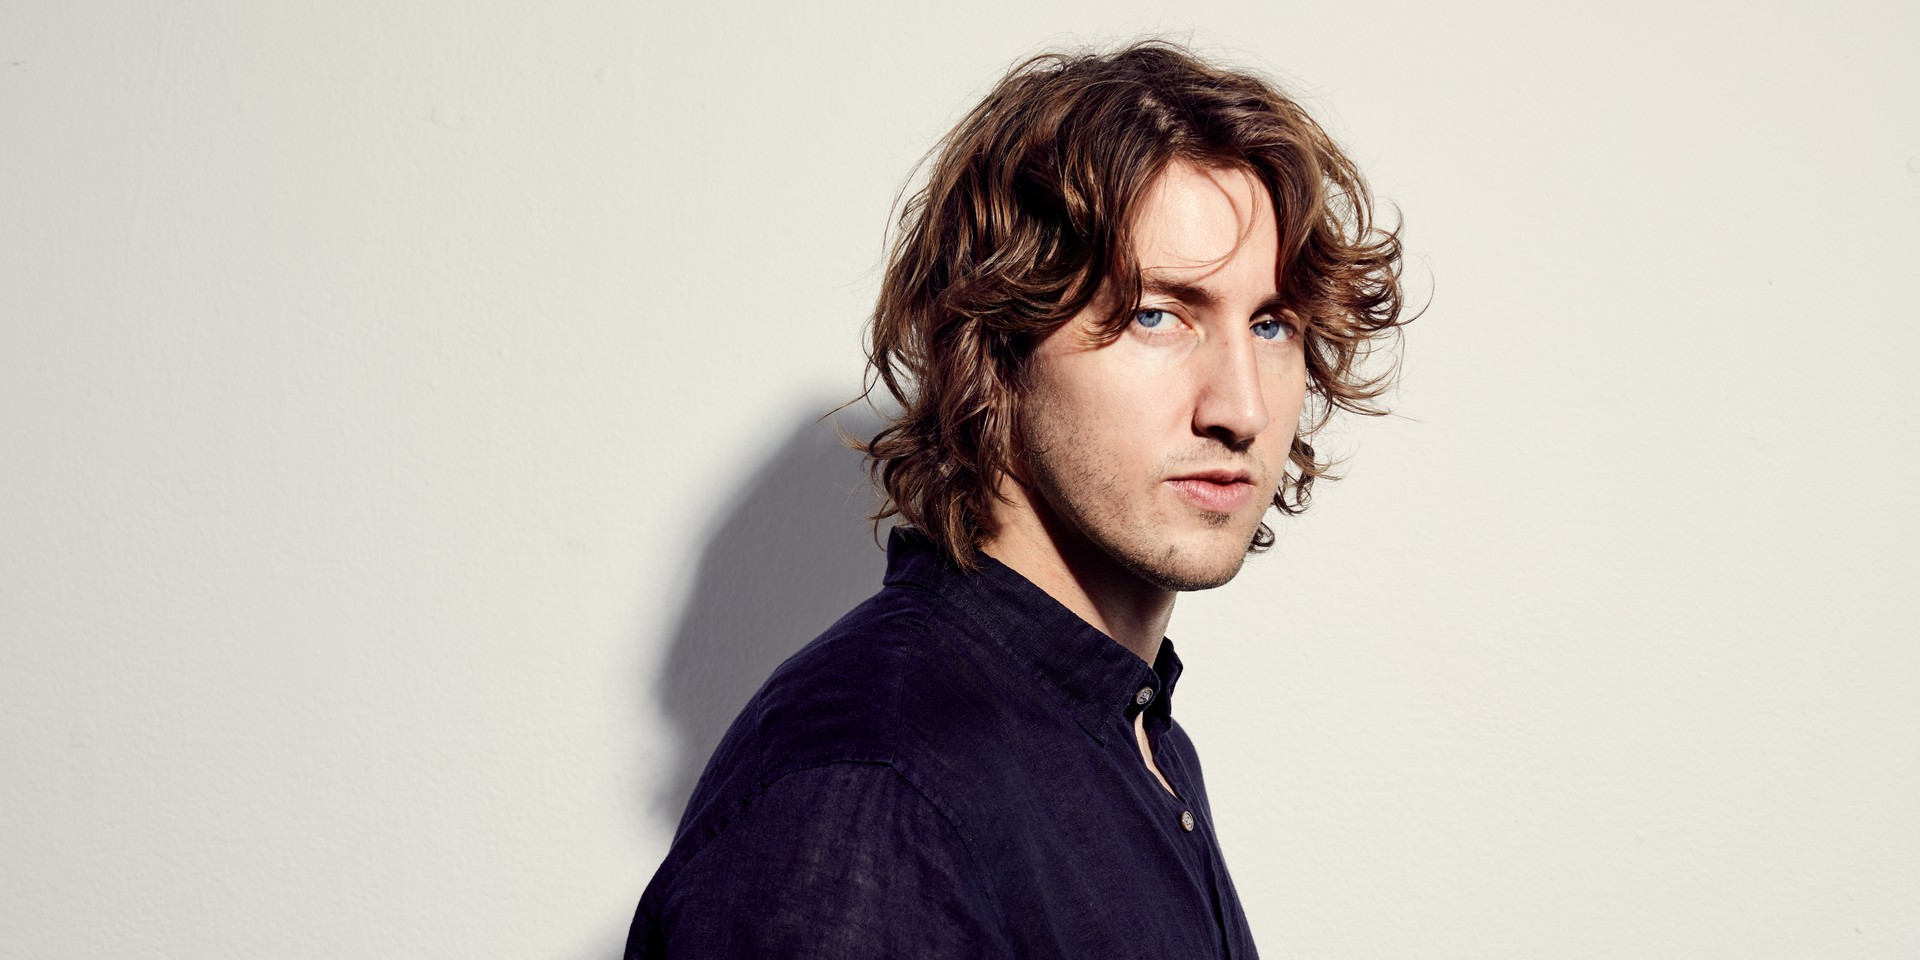 """""""It feels like I've slipped into this alternate universe"""": An interview with Dean Lewis"""